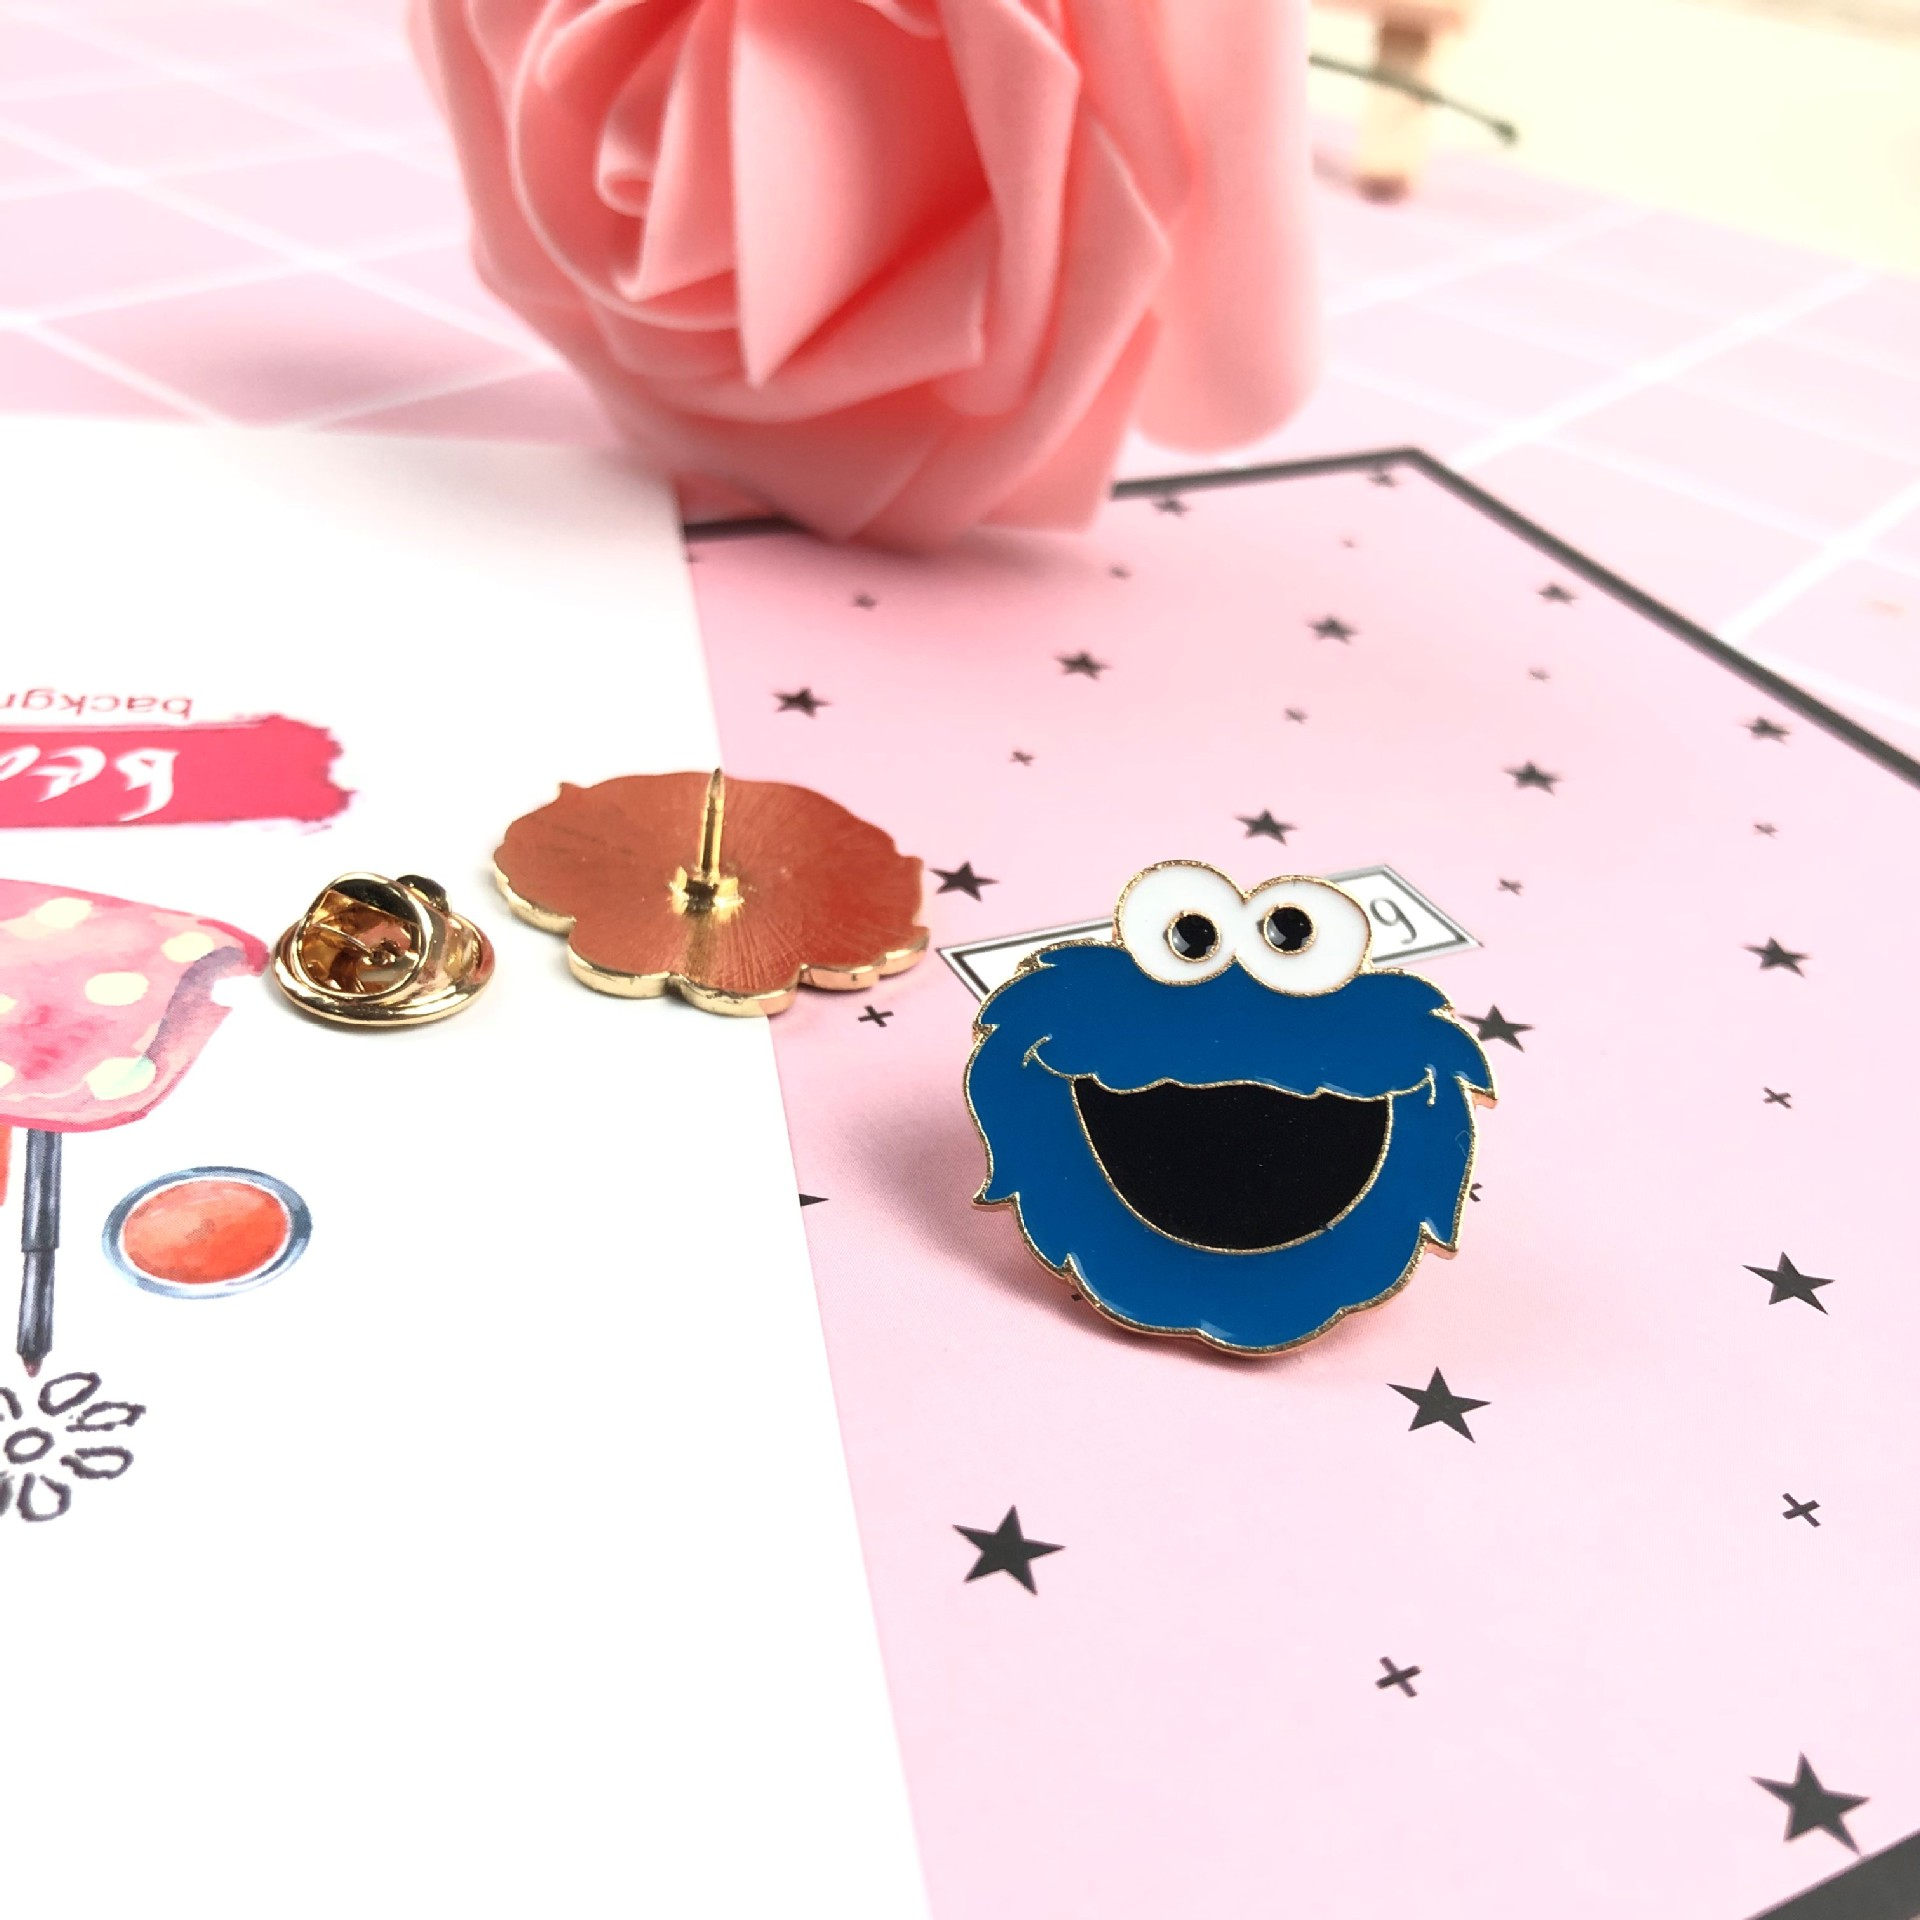 HLX057 Huilin Customized 2019 new Japan and South Korea cute fashion alloy brooch clothes bag jewelry badge Cartoon Brooch